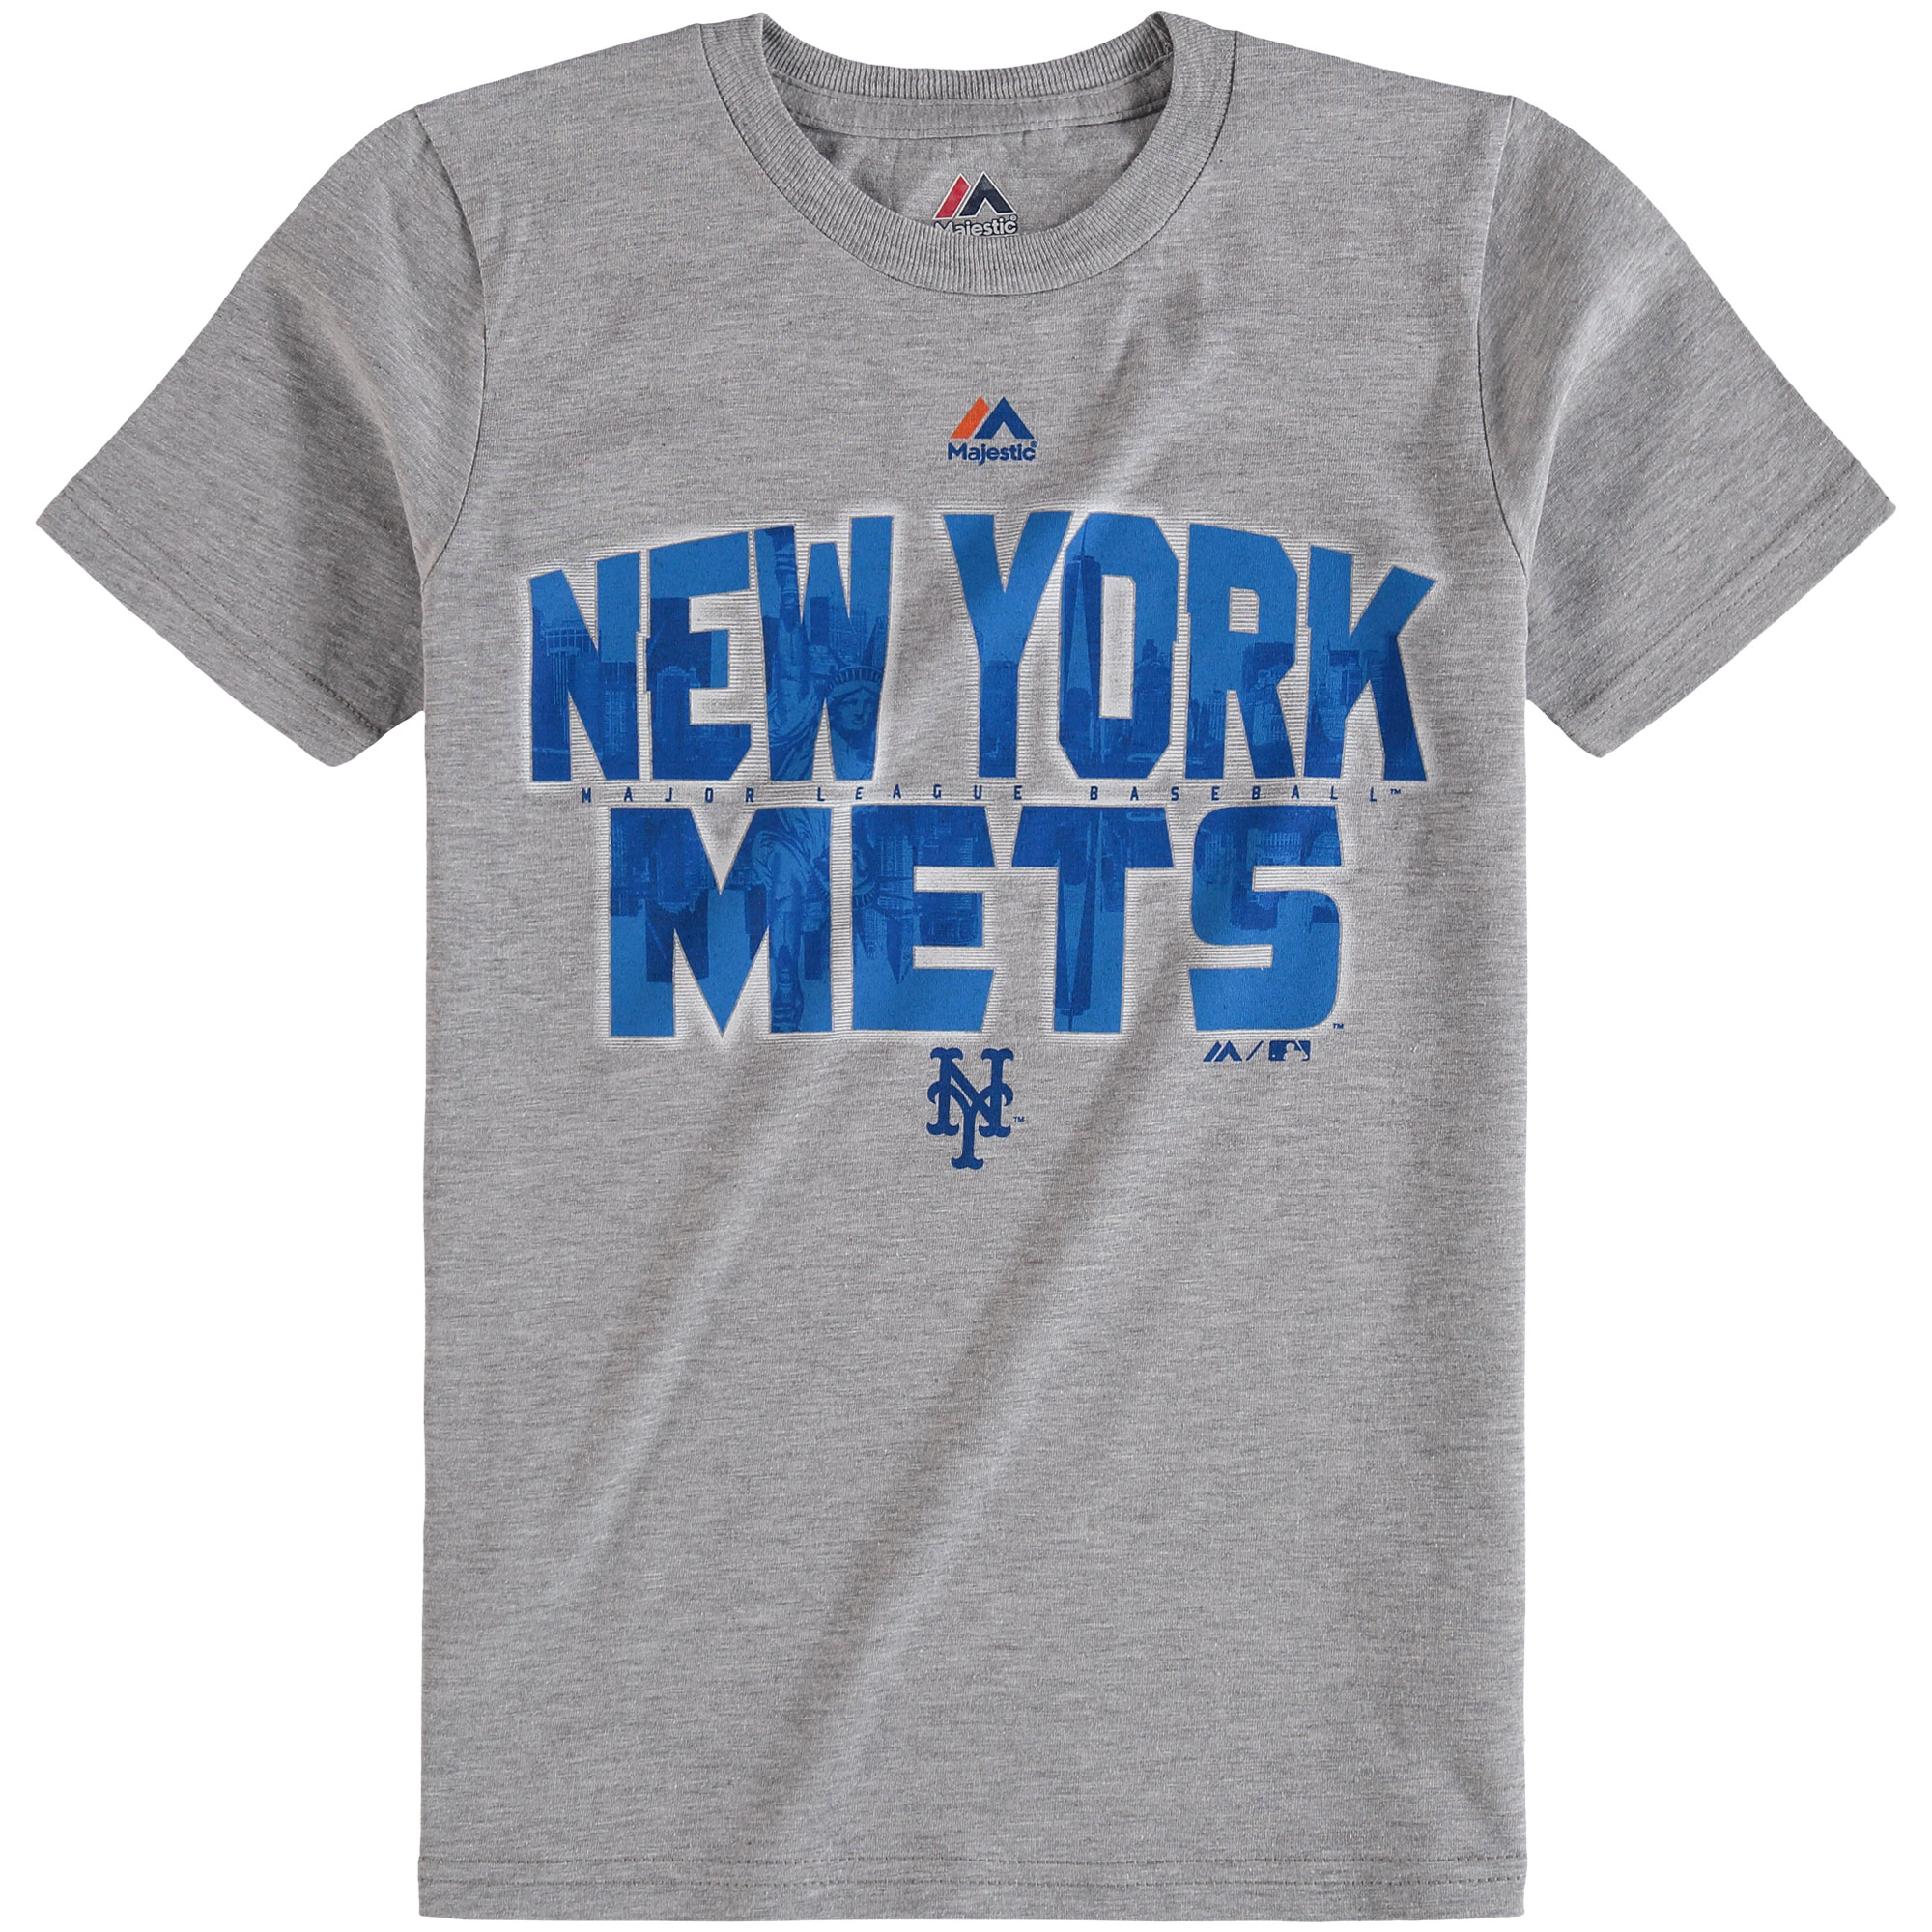 New York Mets Majestic Youth Big City T-Shirt - Gray